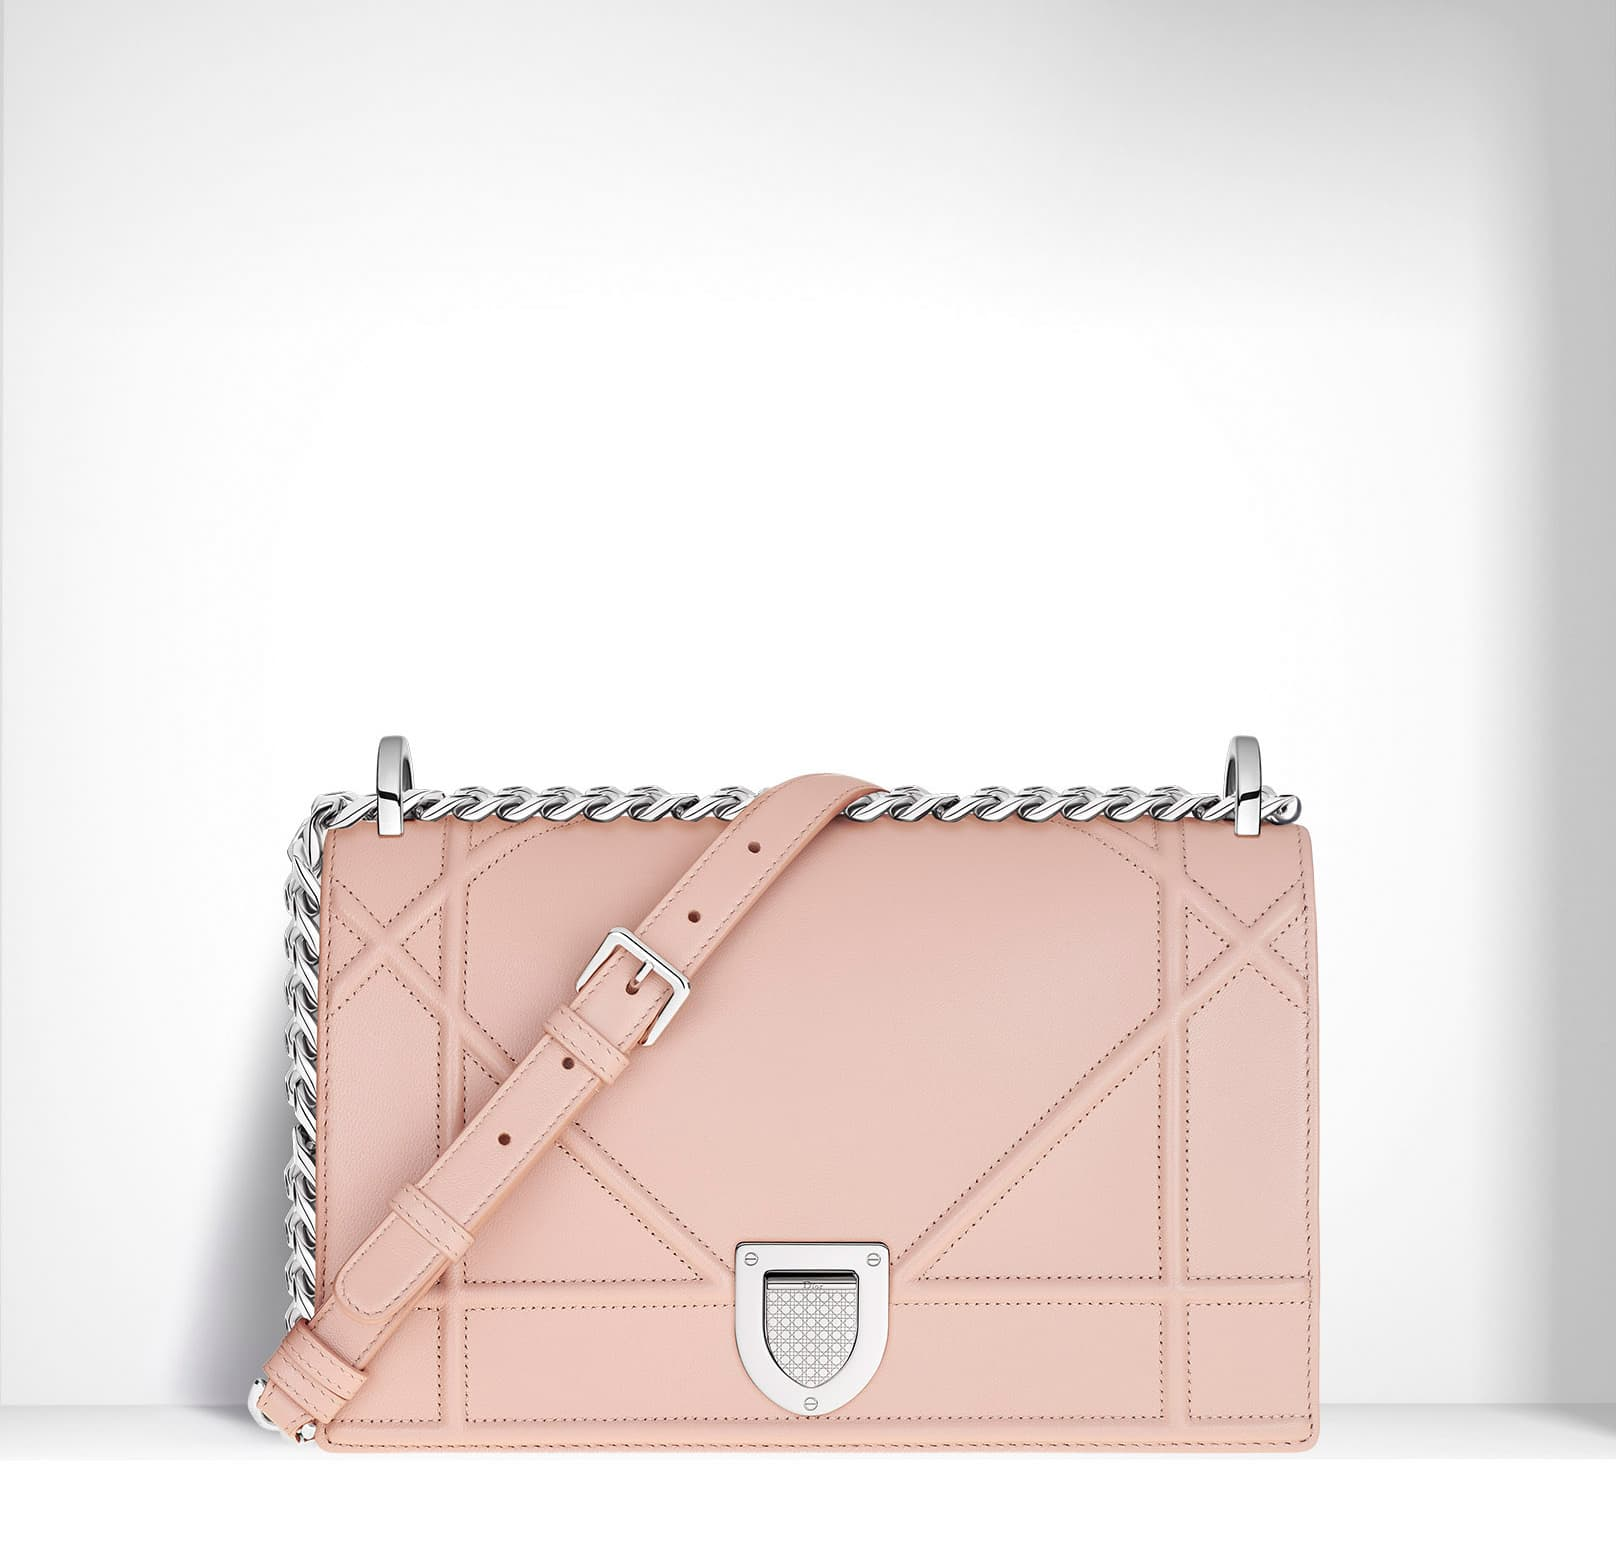 7a64d3377711 More Dior Fall   Winter 2015 Bags and Europe Price Increase on ...